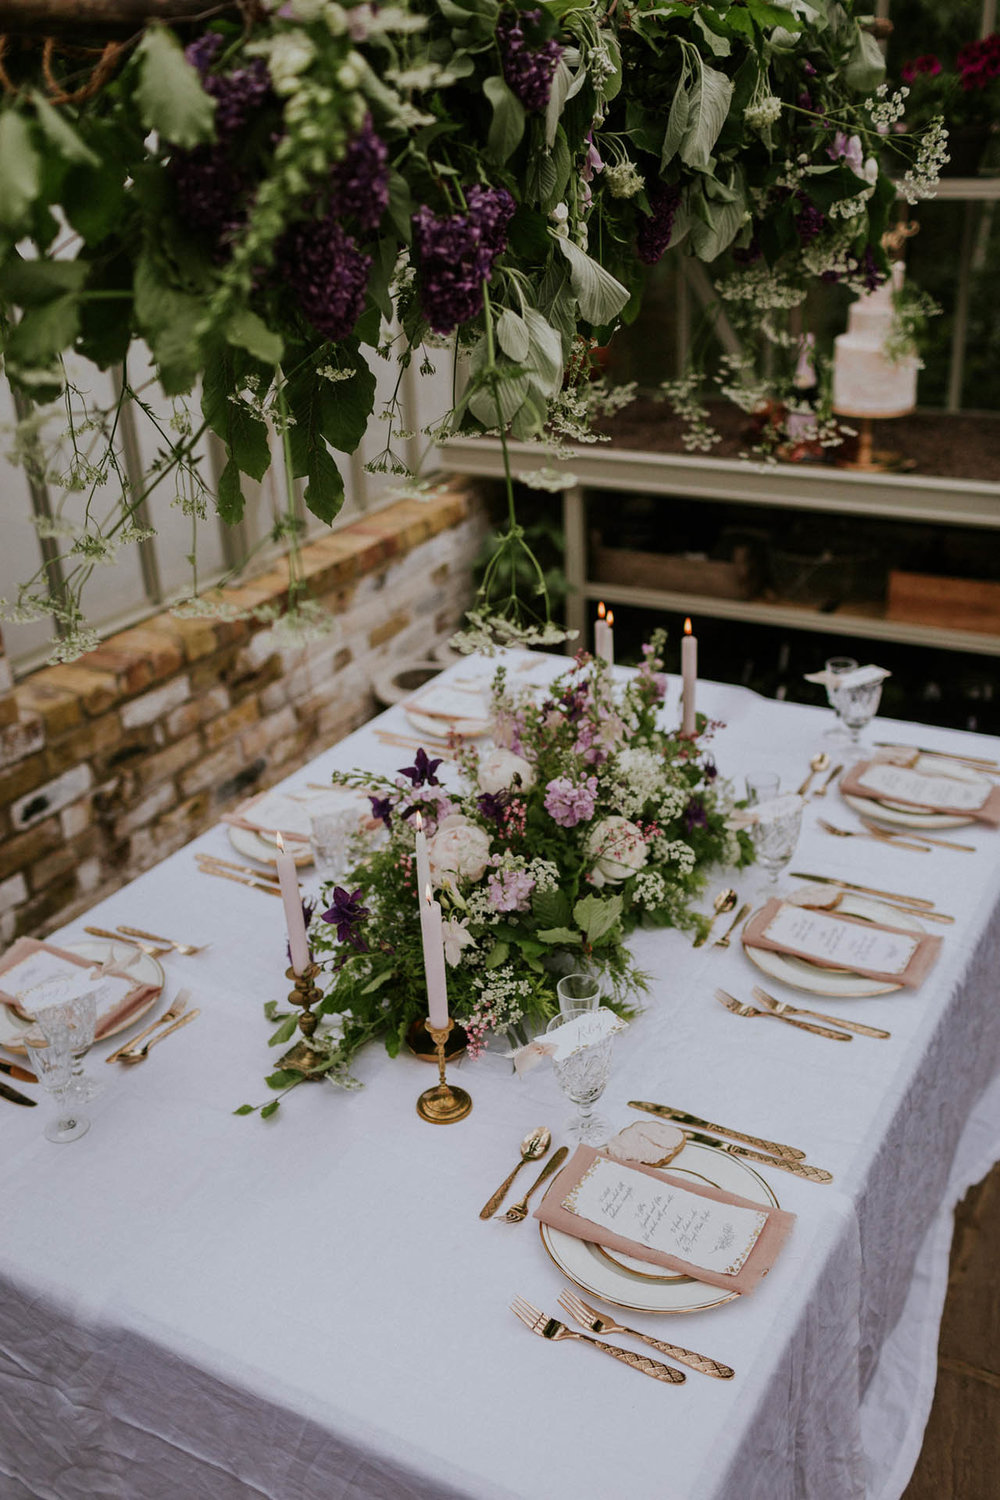 Bespoke gold adorned calligraphy menus and place card for an intimate garden wedding.